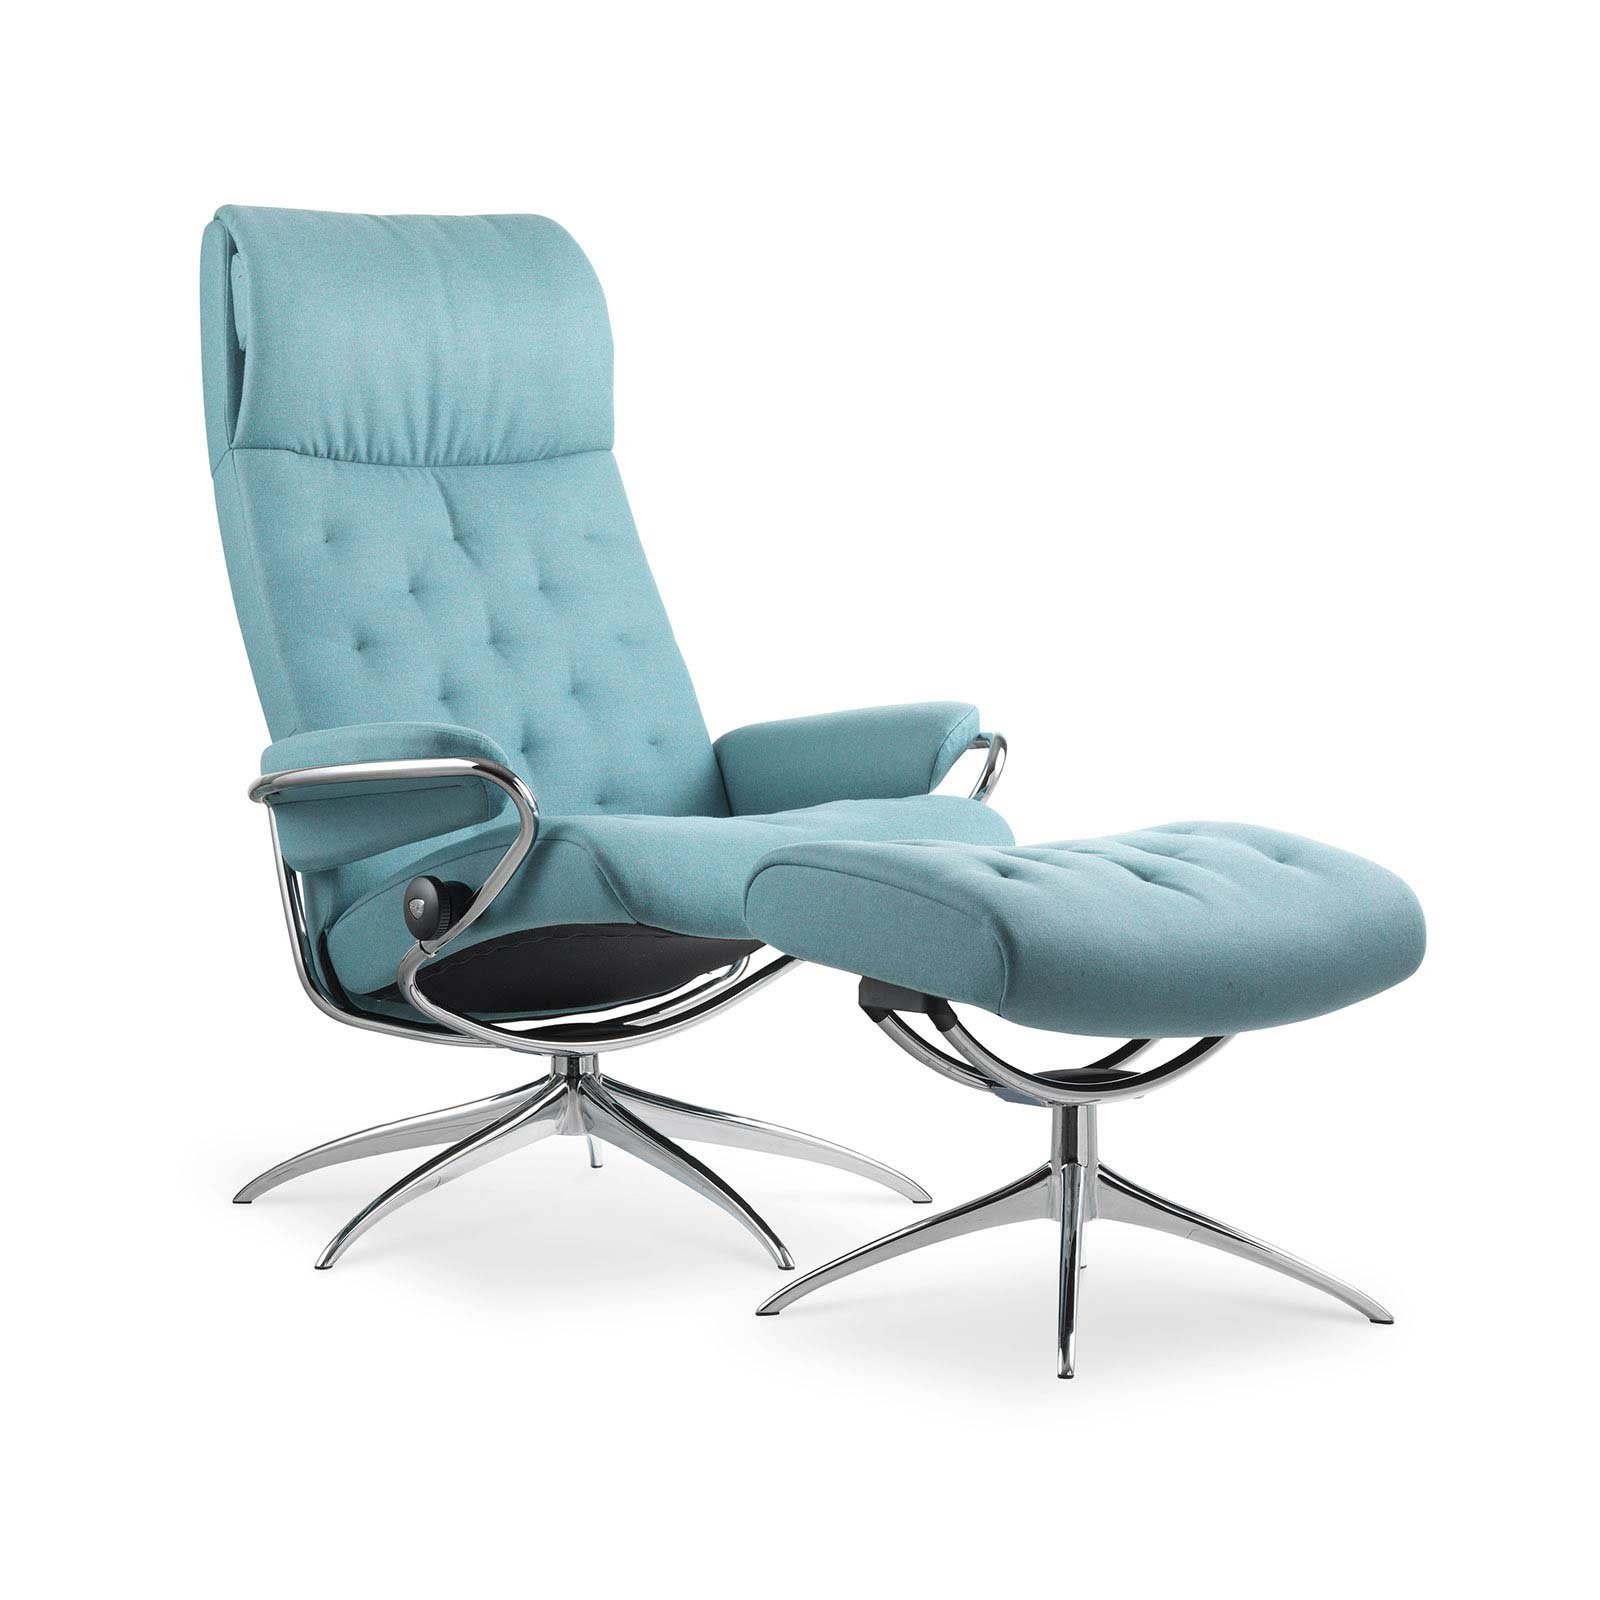 Stressless Sessel Höffner Stressless Metro High Back Calido Aqua Gestell Chrom Hocker